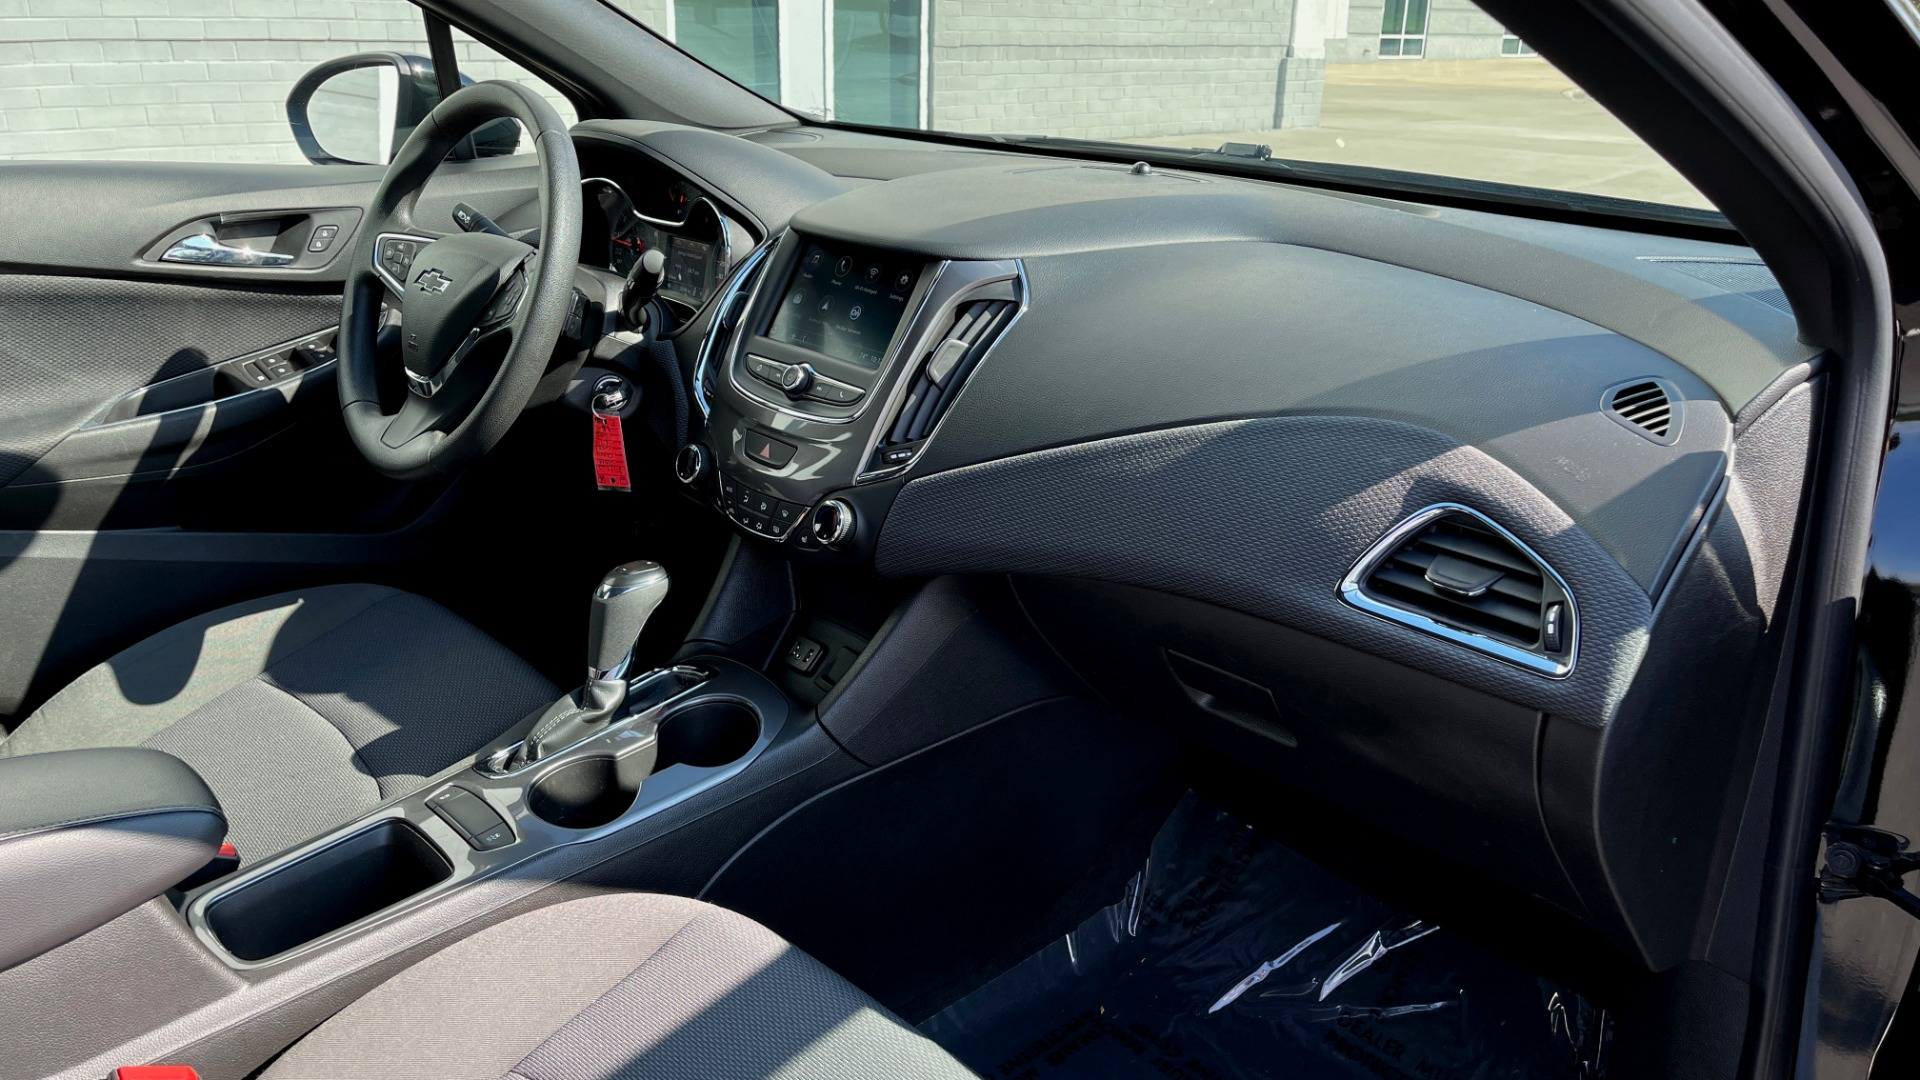 Used 2019 Chevrolet CRUZE LT / 1.4L TURBO / 6-SPD AUTO / AIR CONDITIONING / REARVIEW for sale $18,495 at Formula Imports in Charlotte NC 28227 47